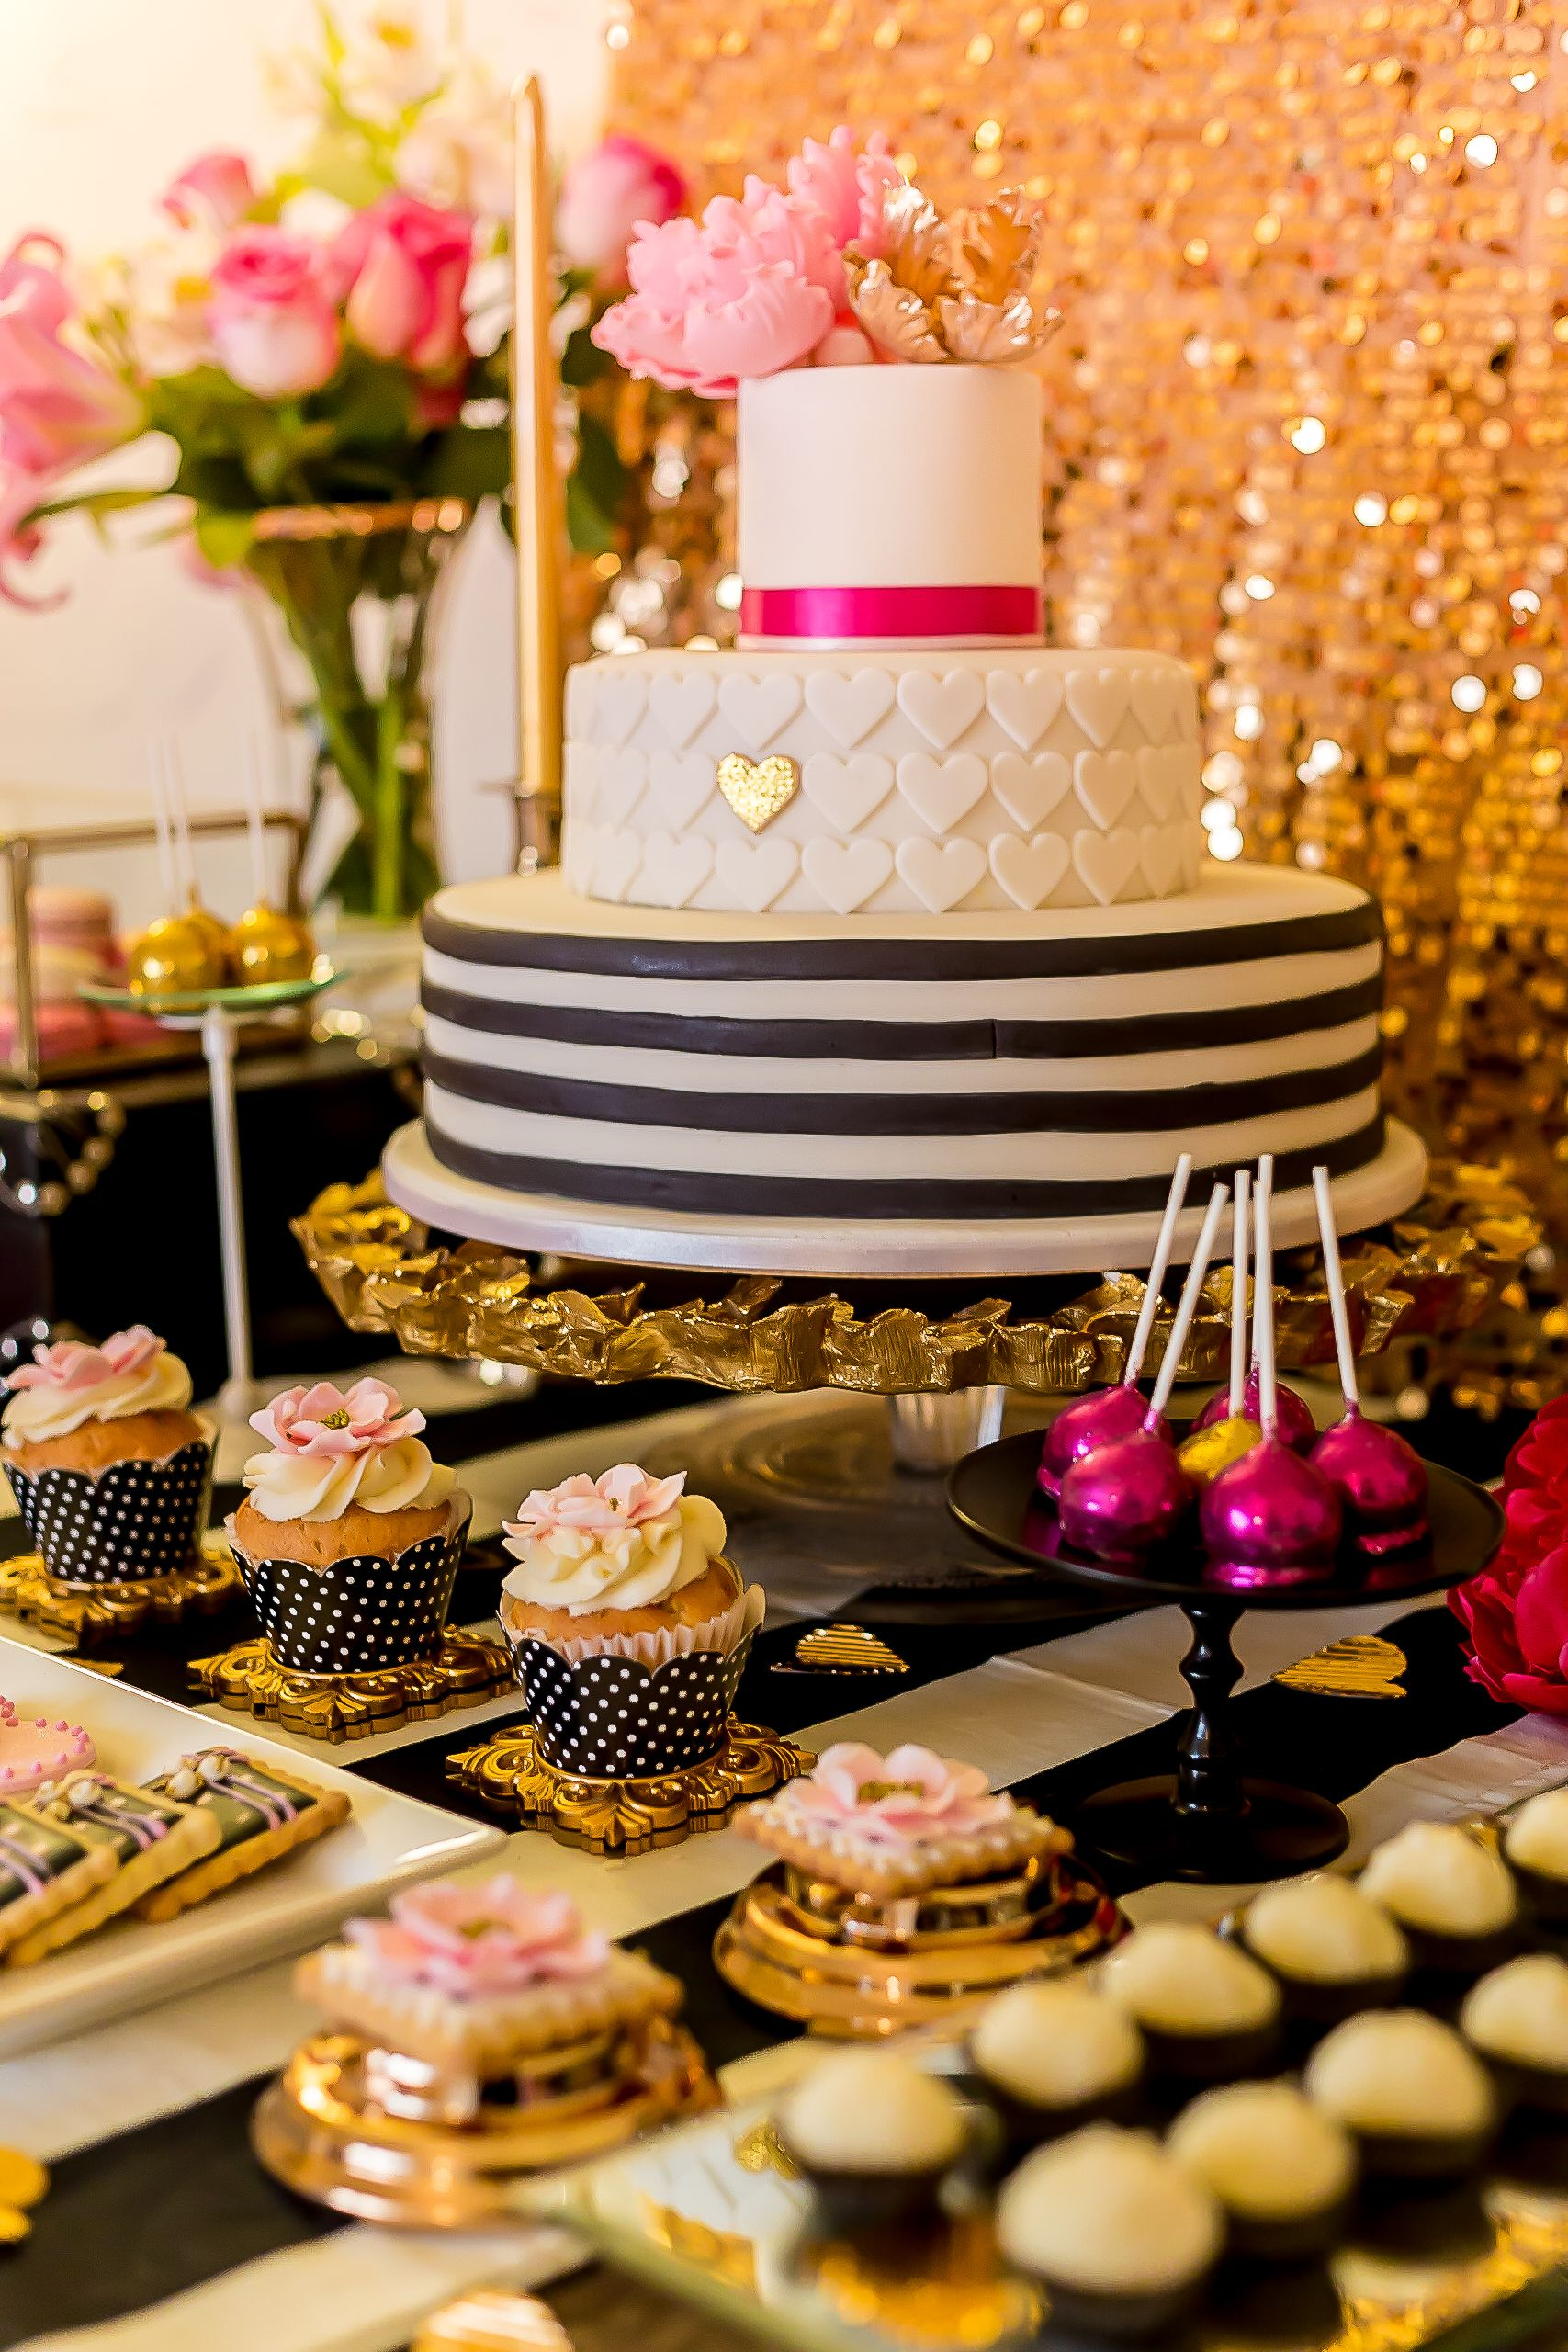 Fiestas Adultos Y Jovenes Parties And Events For Young Adults Adult Birthday Party 40th